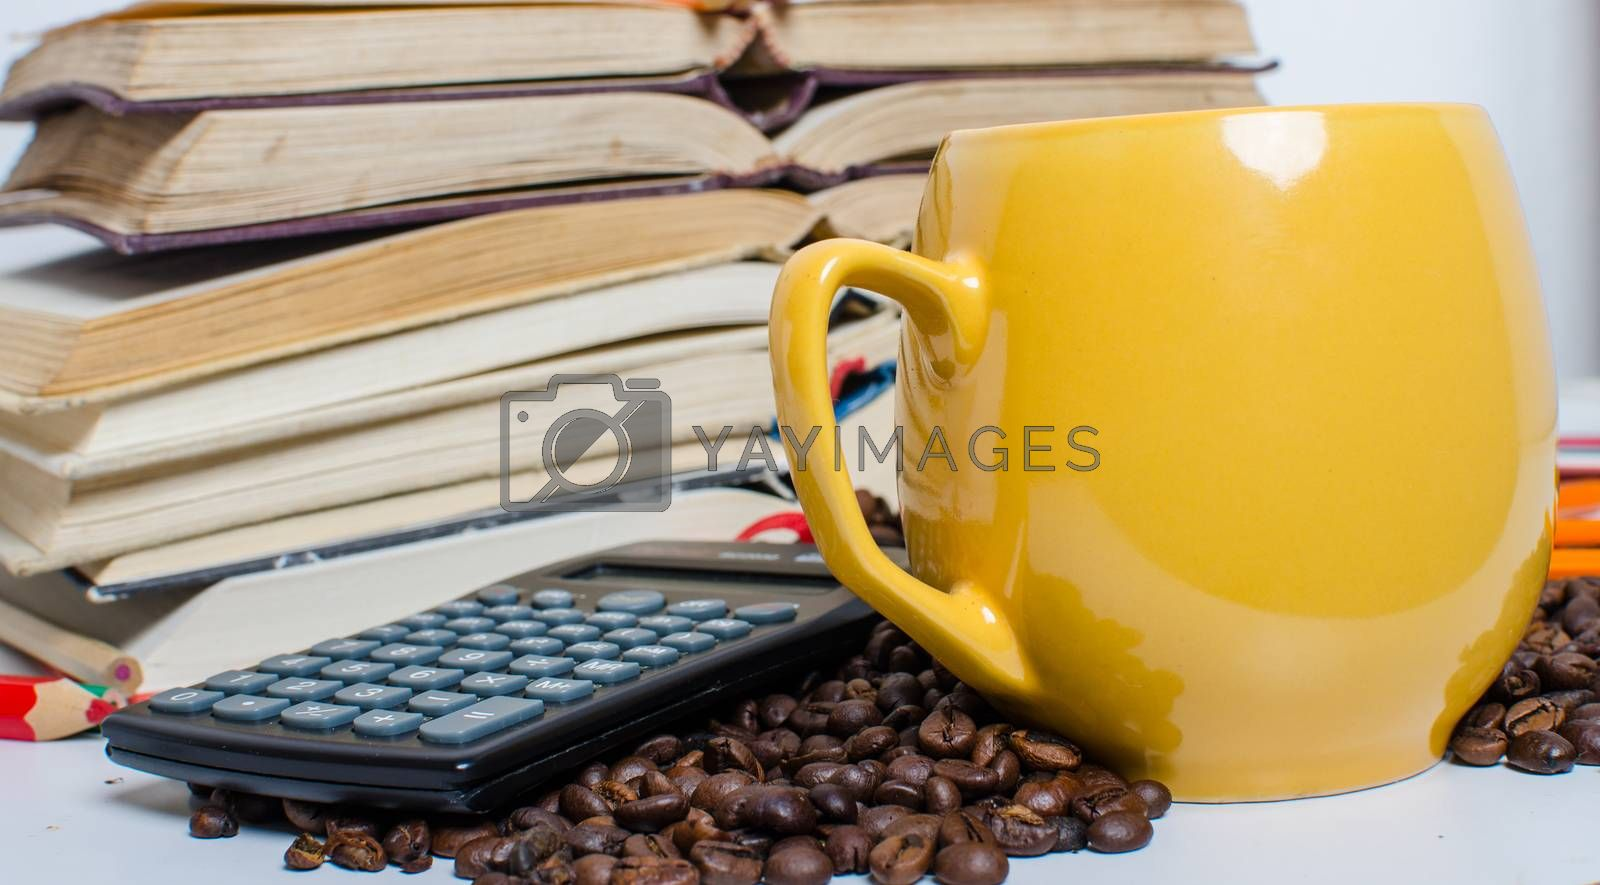 Pile of books,calculator and coffee by noskaphoto